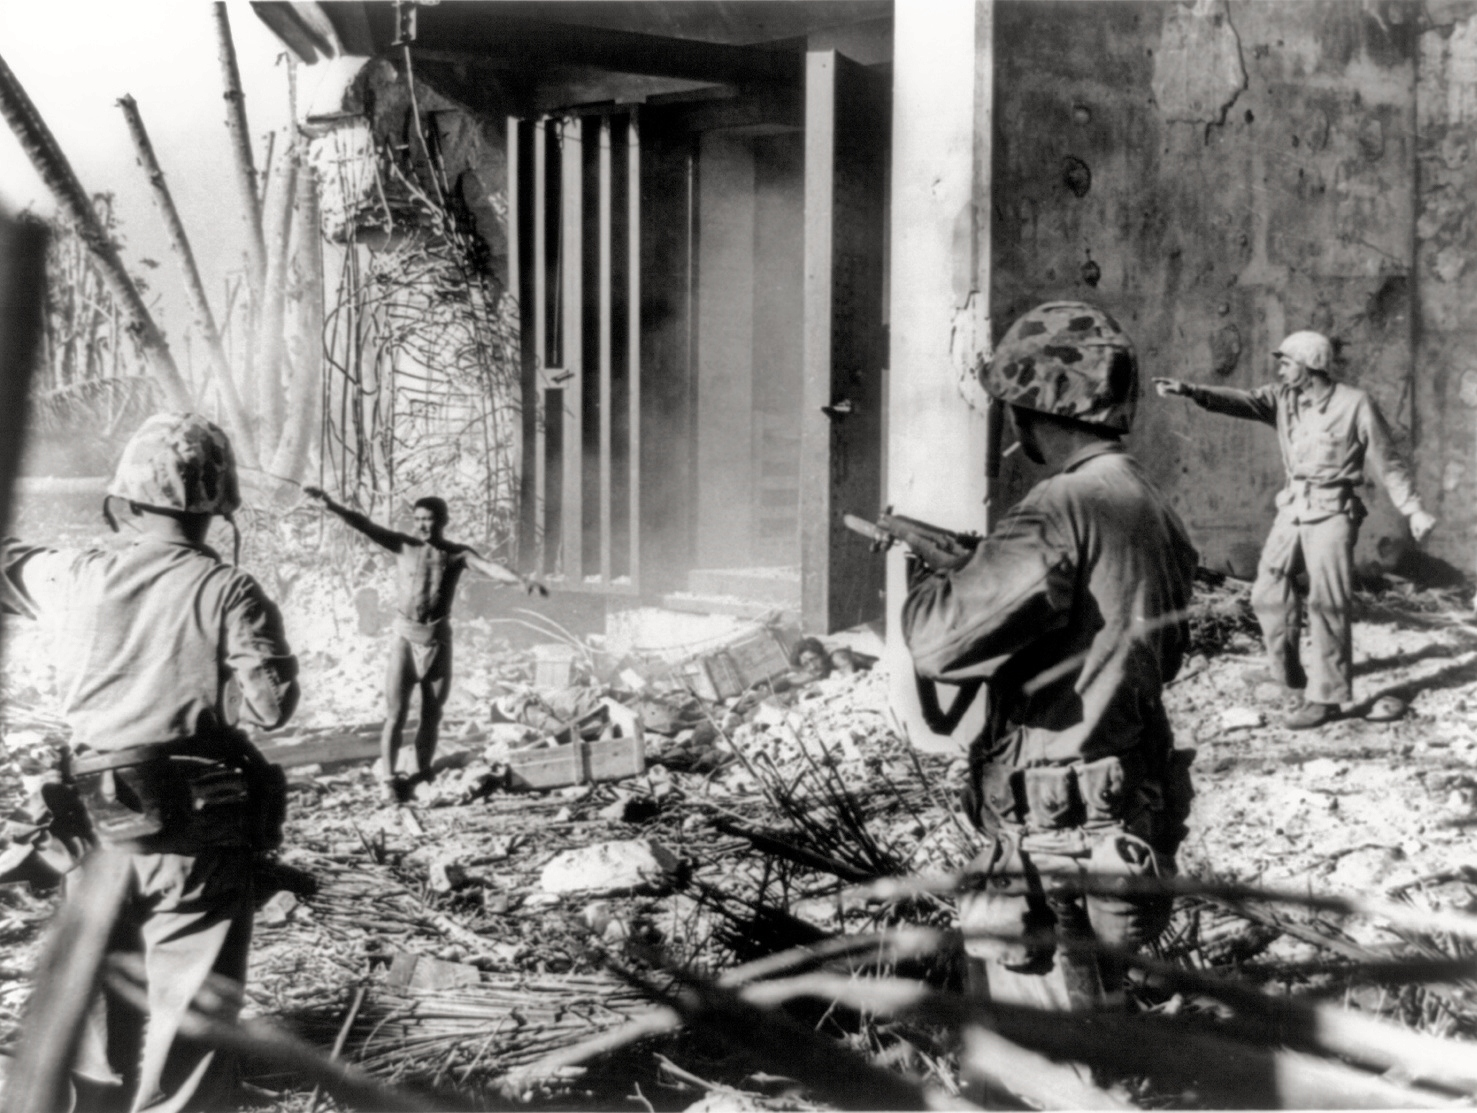 A Japanese soldier surrendering to three US Marines in the Marshall Islands during January 1944.